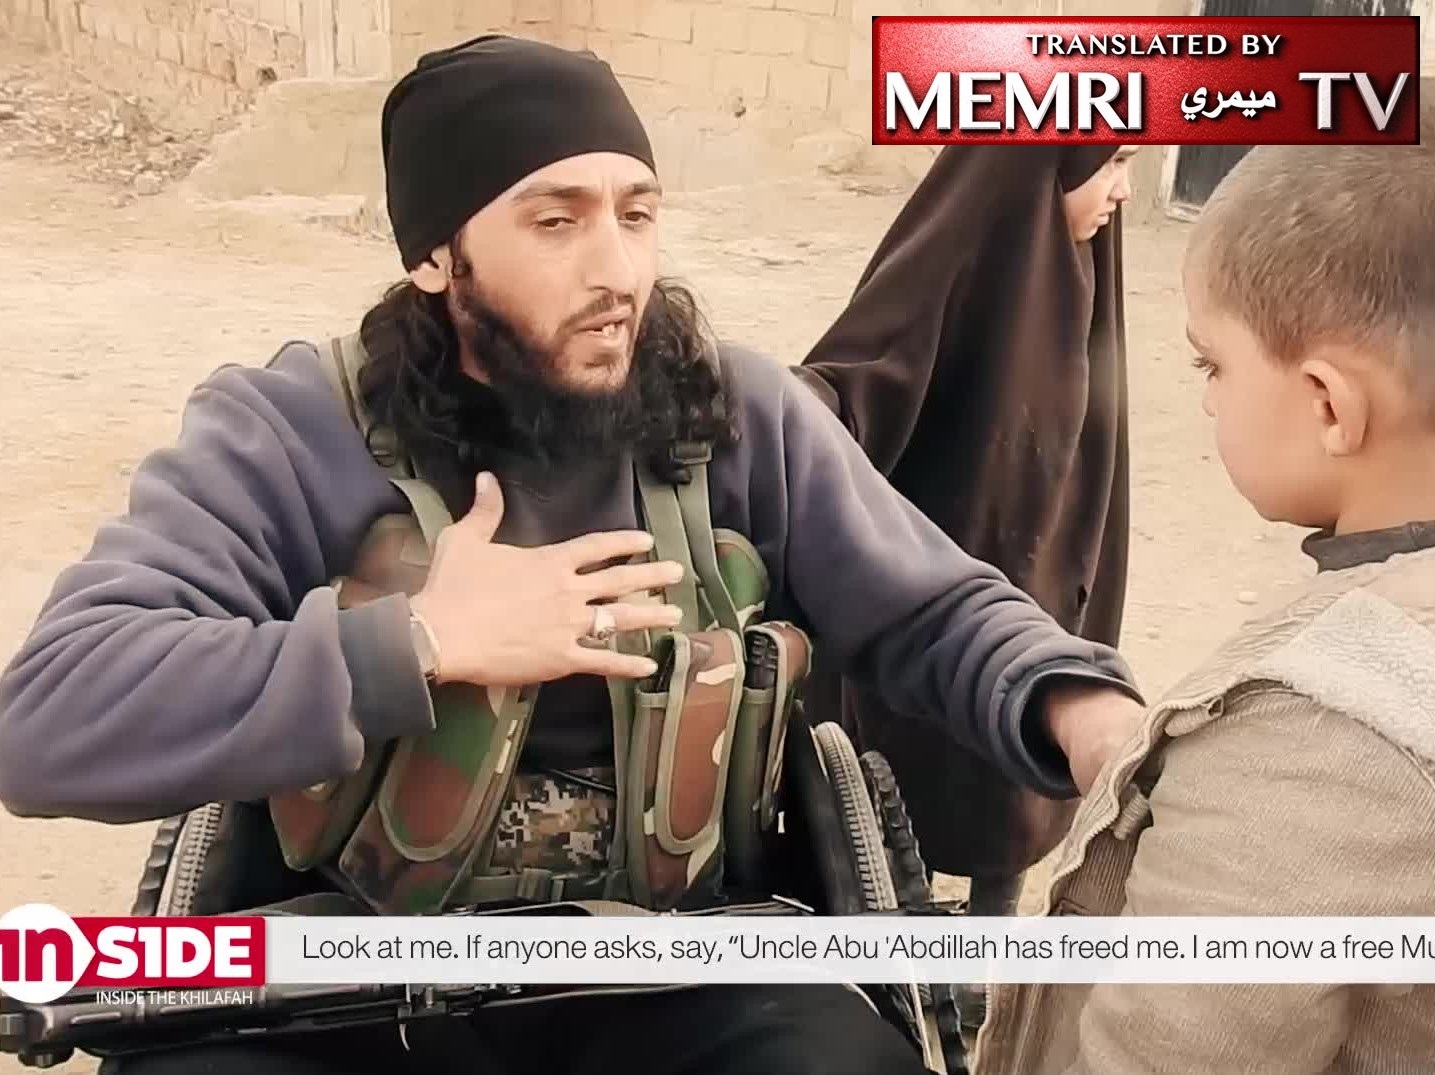 ISIS Video Shows Women Fighting alongside Men, Documents Multiple